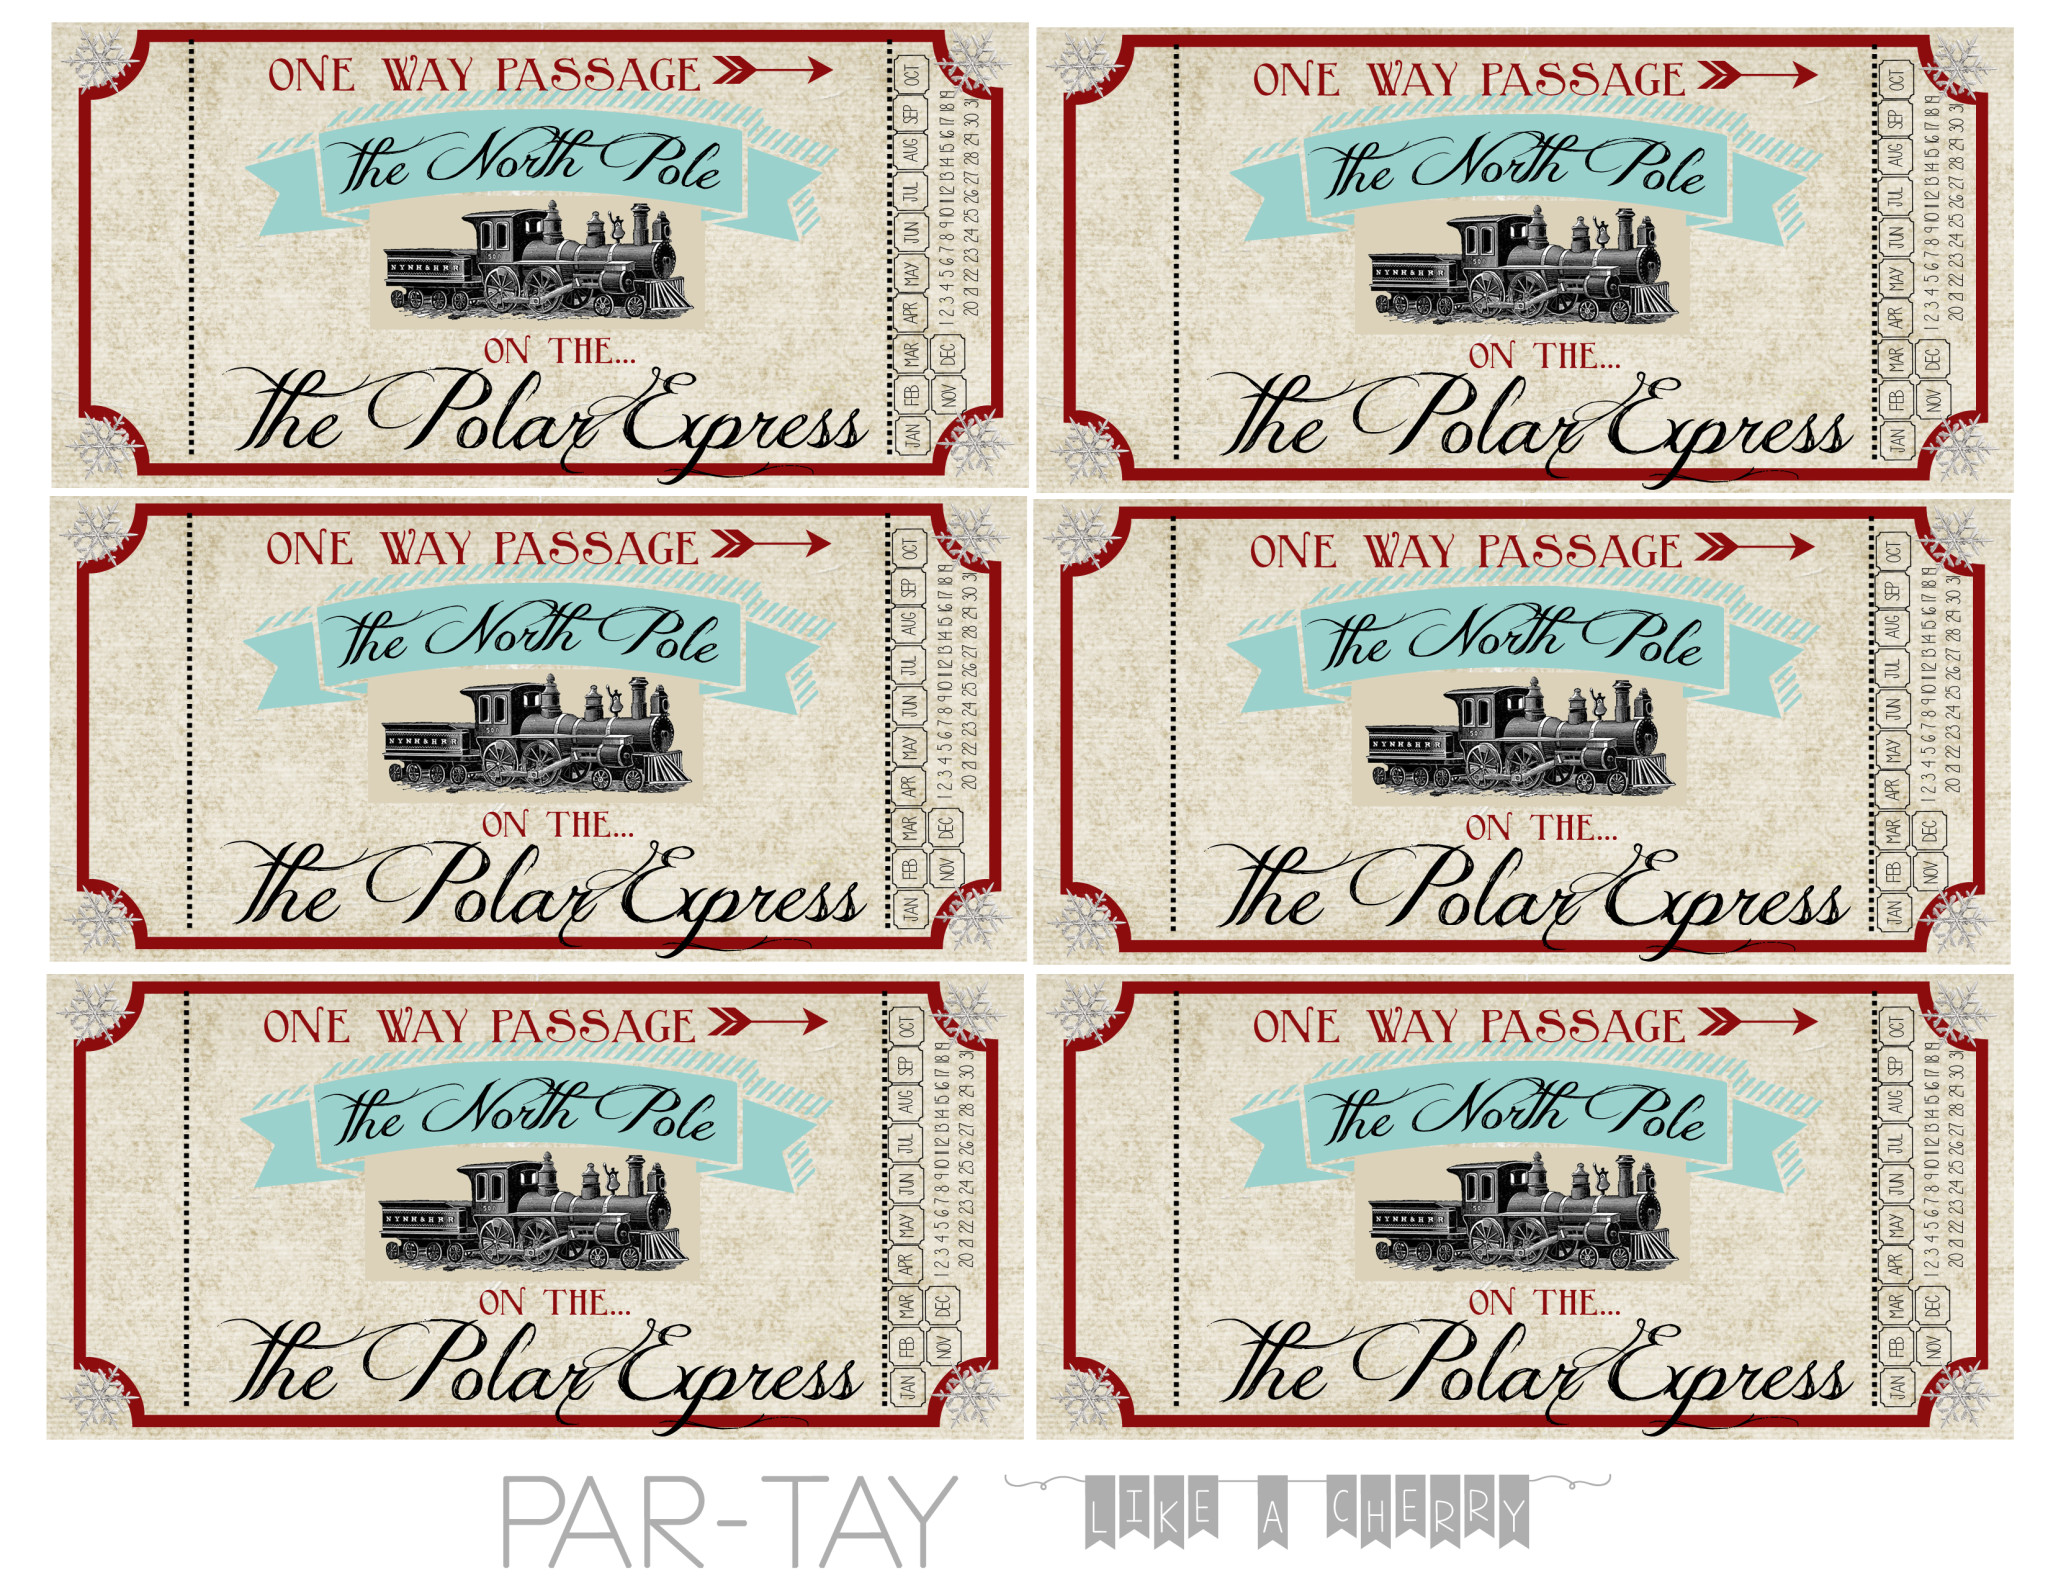 Polar Express Train Tickets Free Printable Party Like a Cherry – Tickets Printable